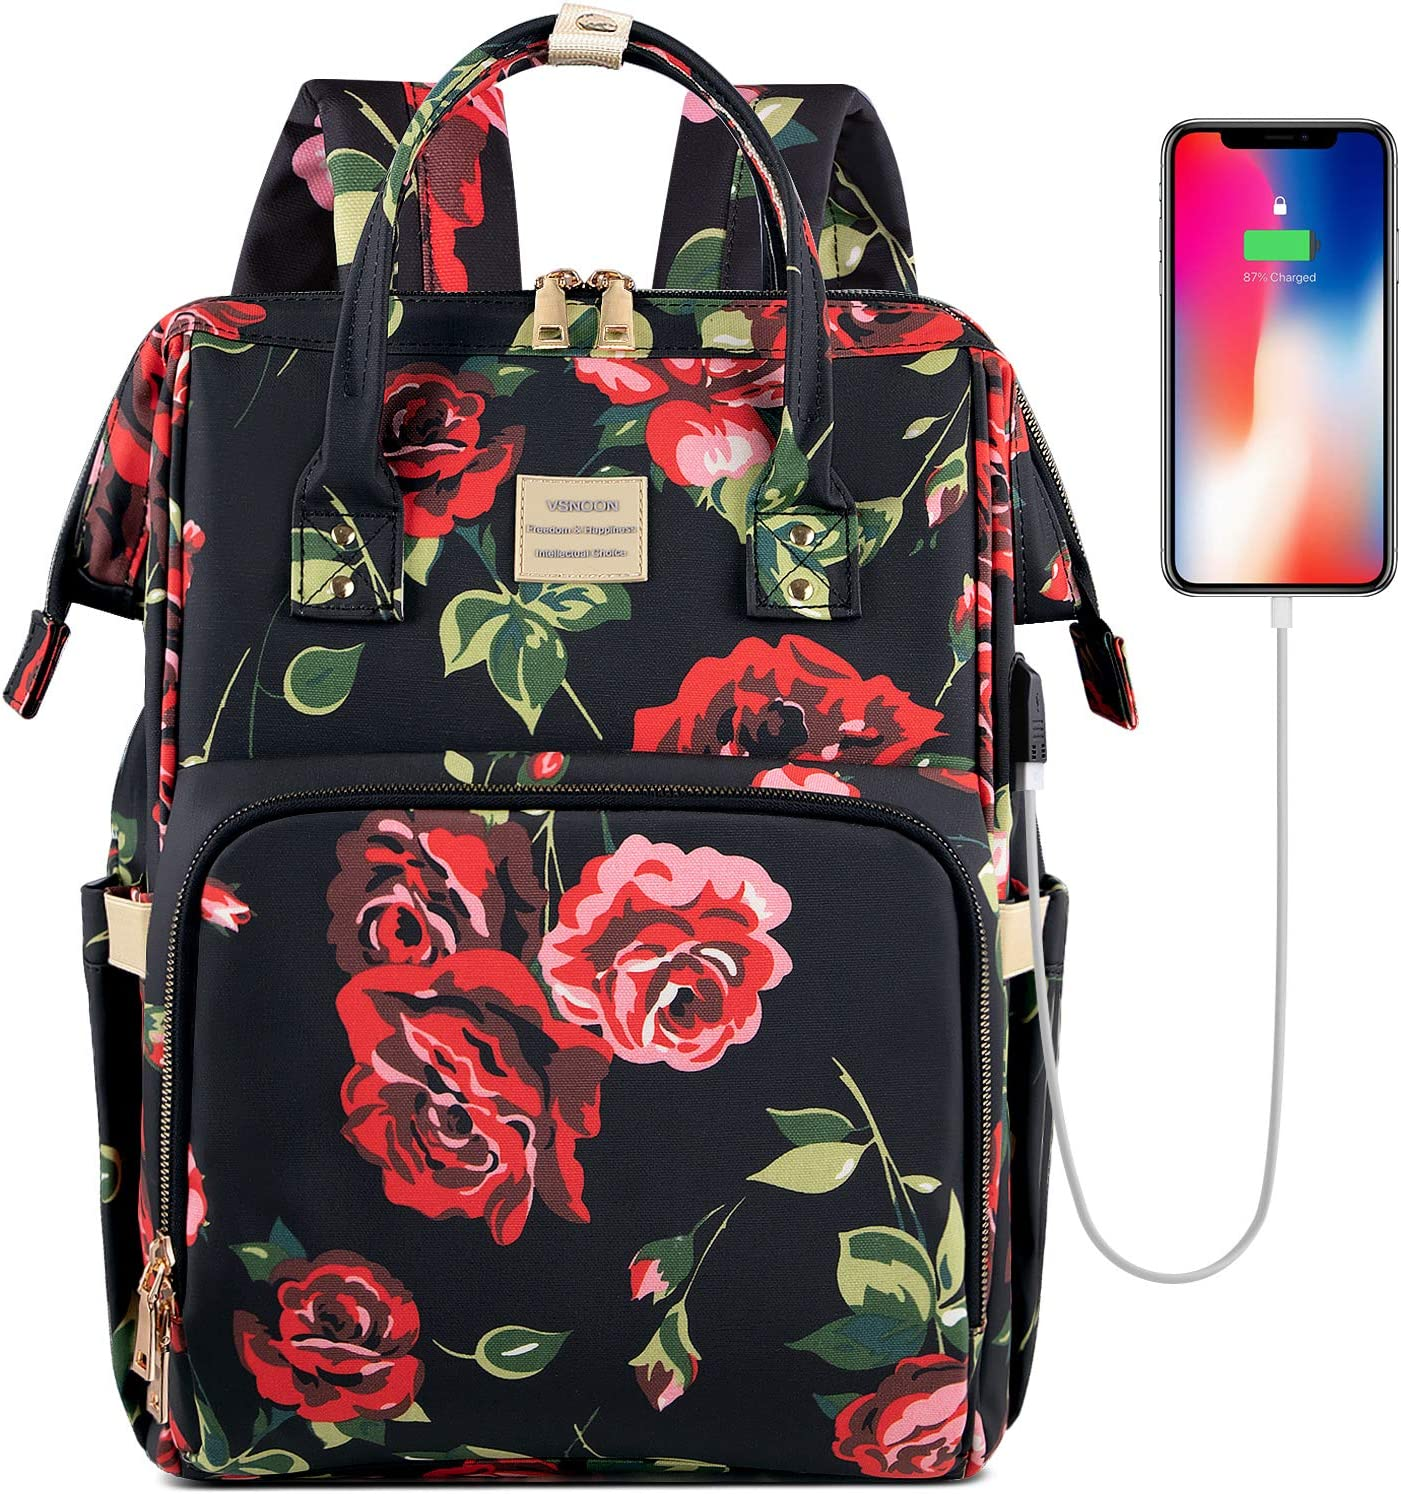 Laptop Backpack,15.6 Inch Stylish College School Backpack with USB Charging Port,Water Resistant Casual Daypack Laptop Backpack for Women/Girls/Business/Travel (Flower3)